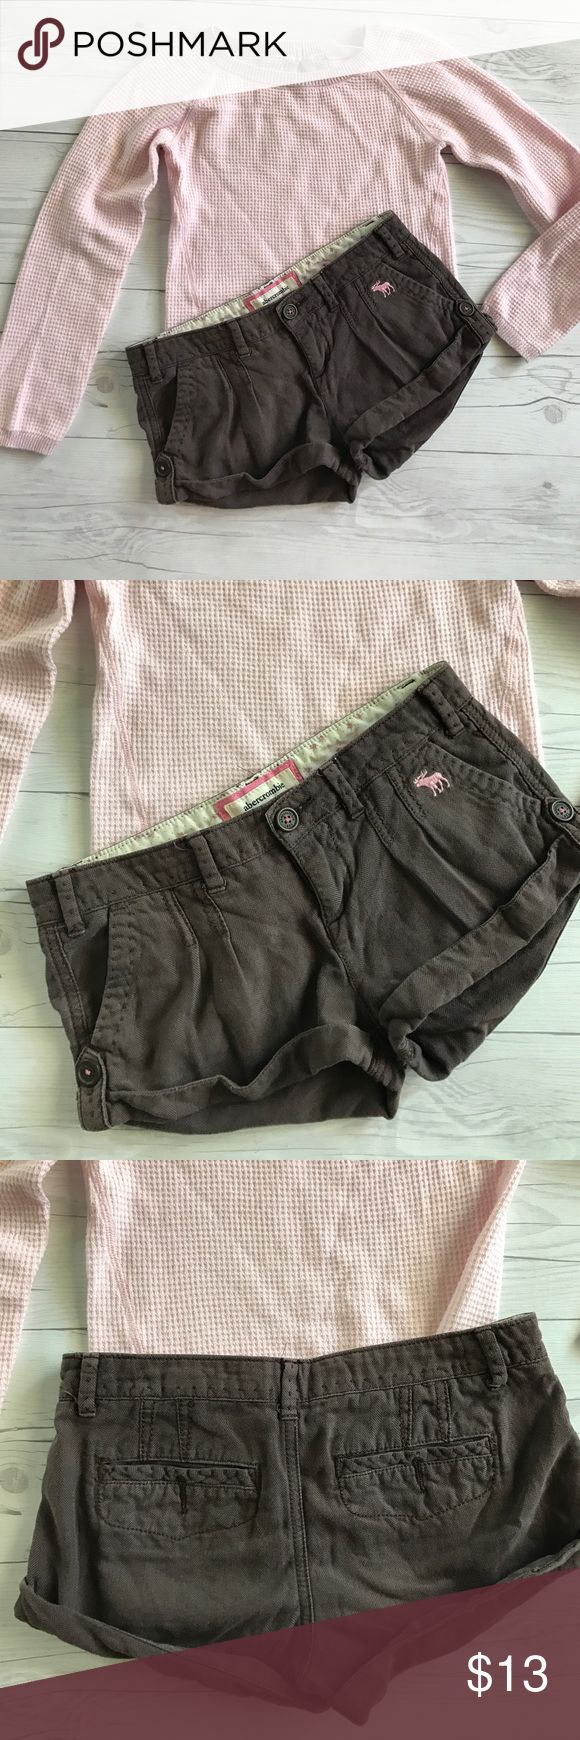 Abercrombie & Fitch shorts Brown soft shorts by Abercrombie & Fitch. Size 10. Excellent condition no rips or stains. I have lots of children's clothing check out my closet! Abercrombie & Fitch Bottoms Shorts